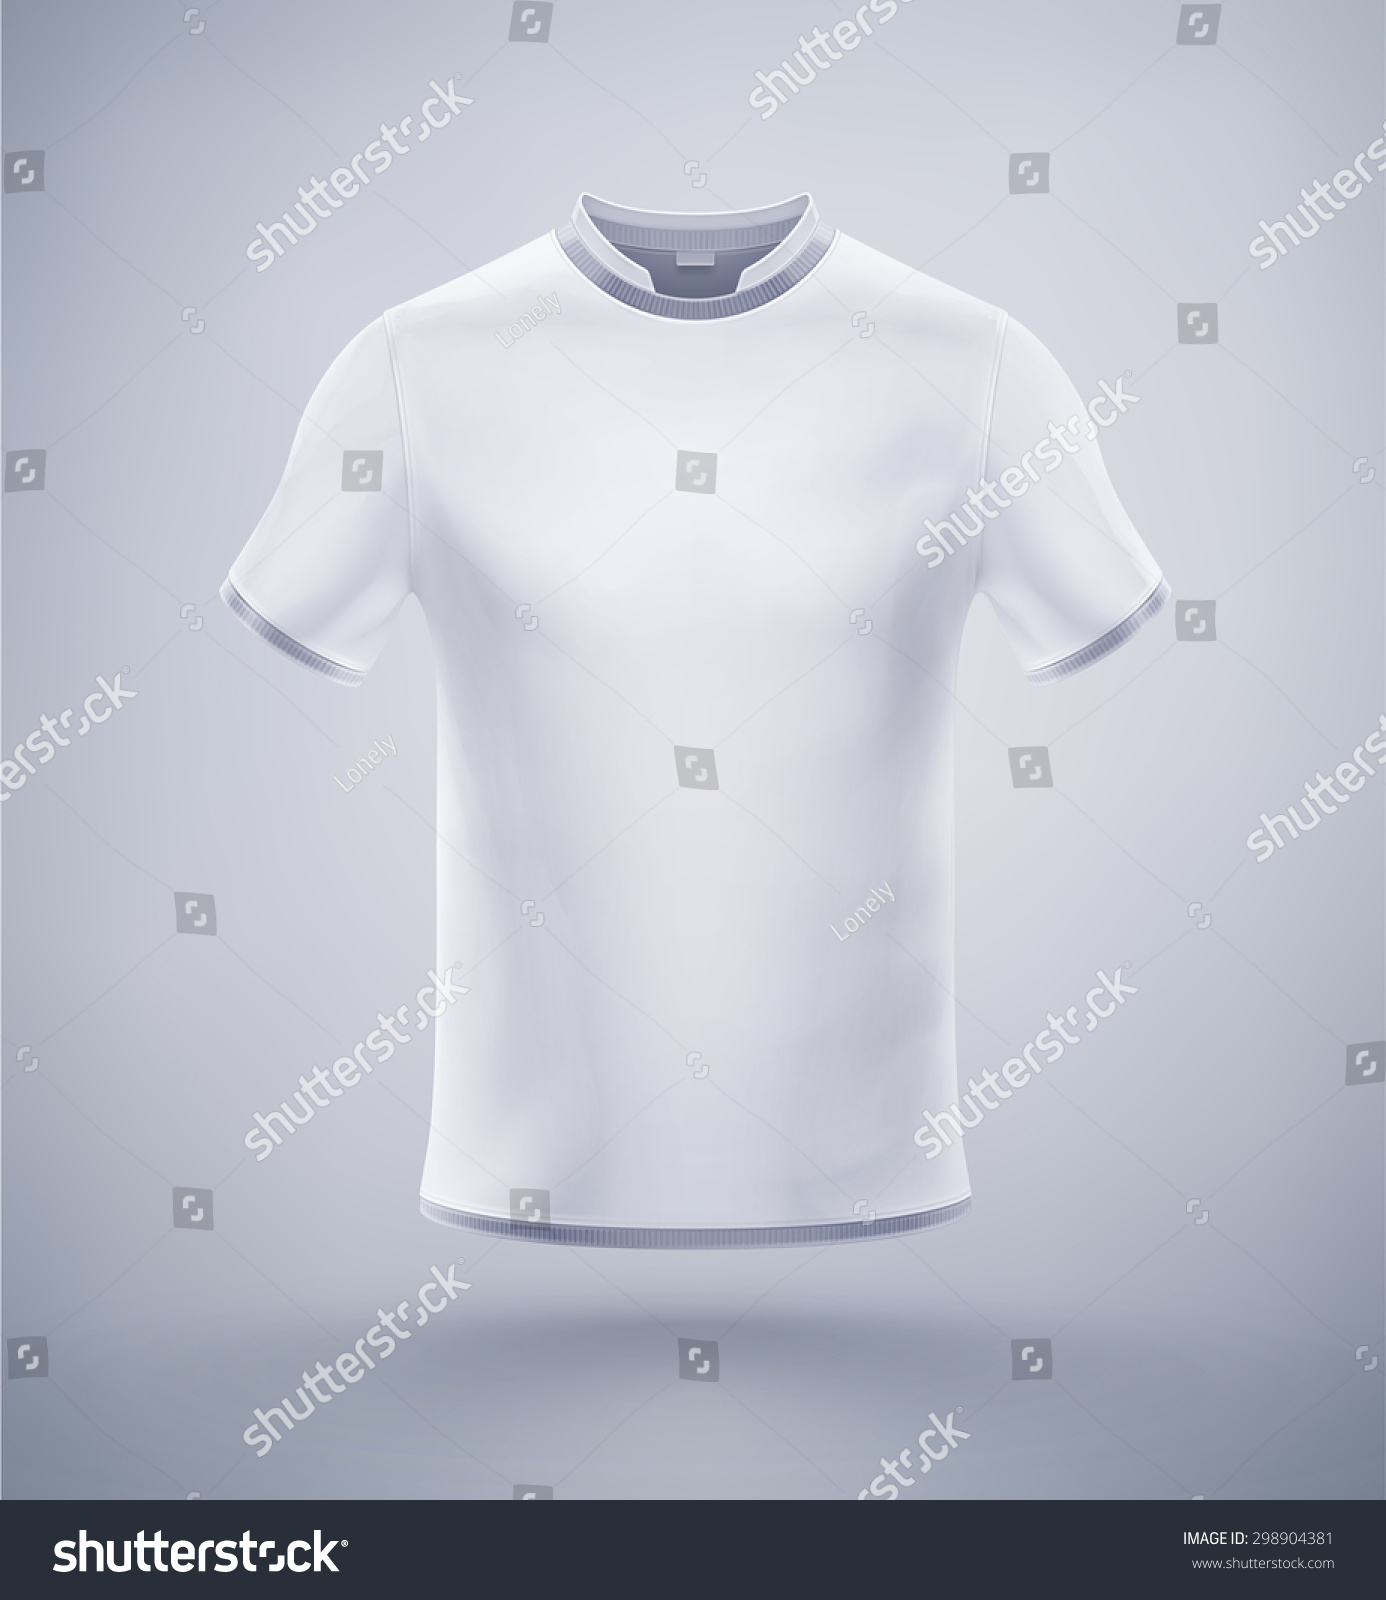 White t shirt eps - Save To A Lightbox